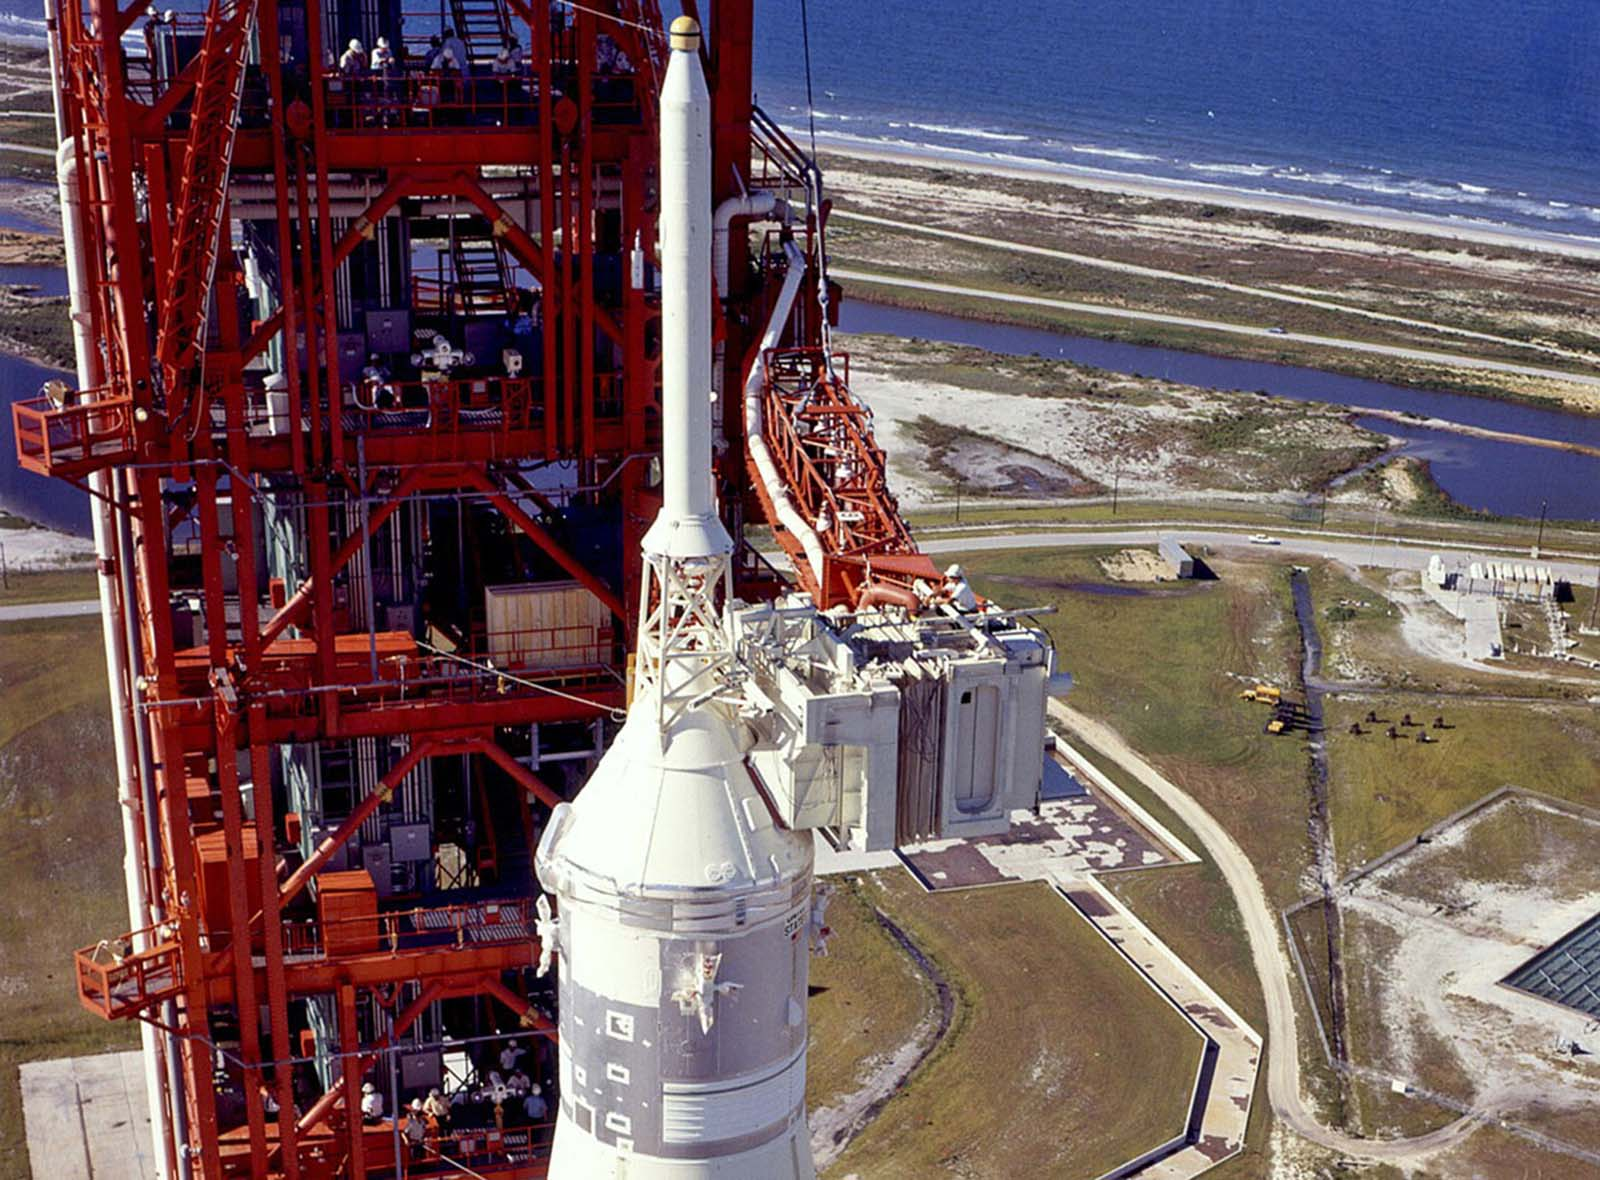 Readying for launch, a technician works atop the white room, through which the astronauts will enter the spacecraft, alongside the 363-foot (111-meter) Saturn V rocket standing on the launchpad at Kennedy Space Center.